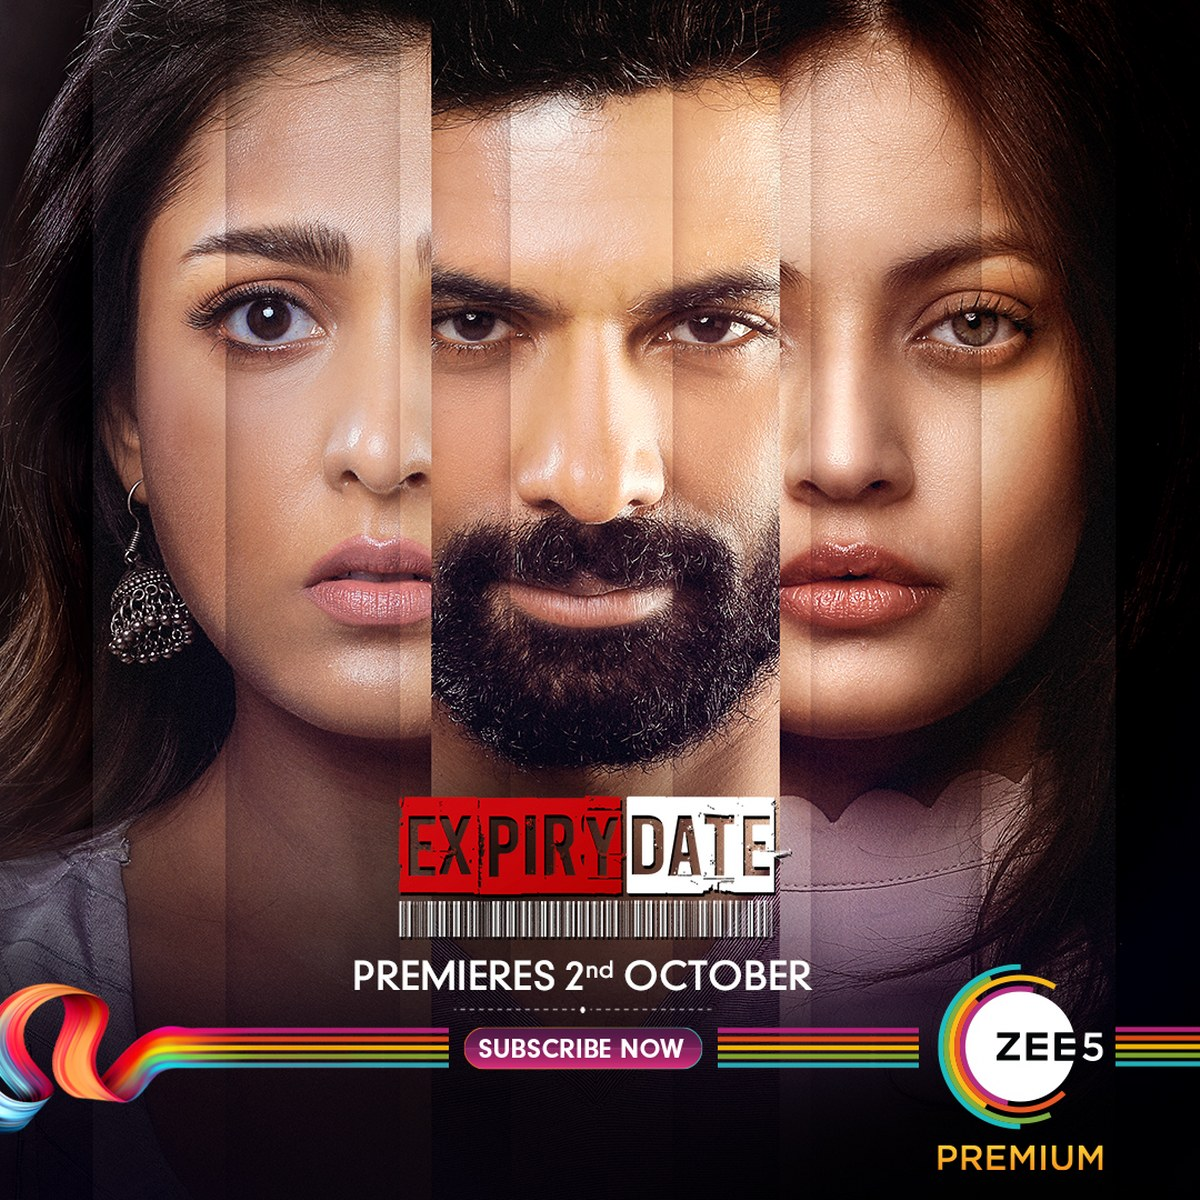 Expiry Date is a ten episode series set to premiere 2nd October on ZEE5